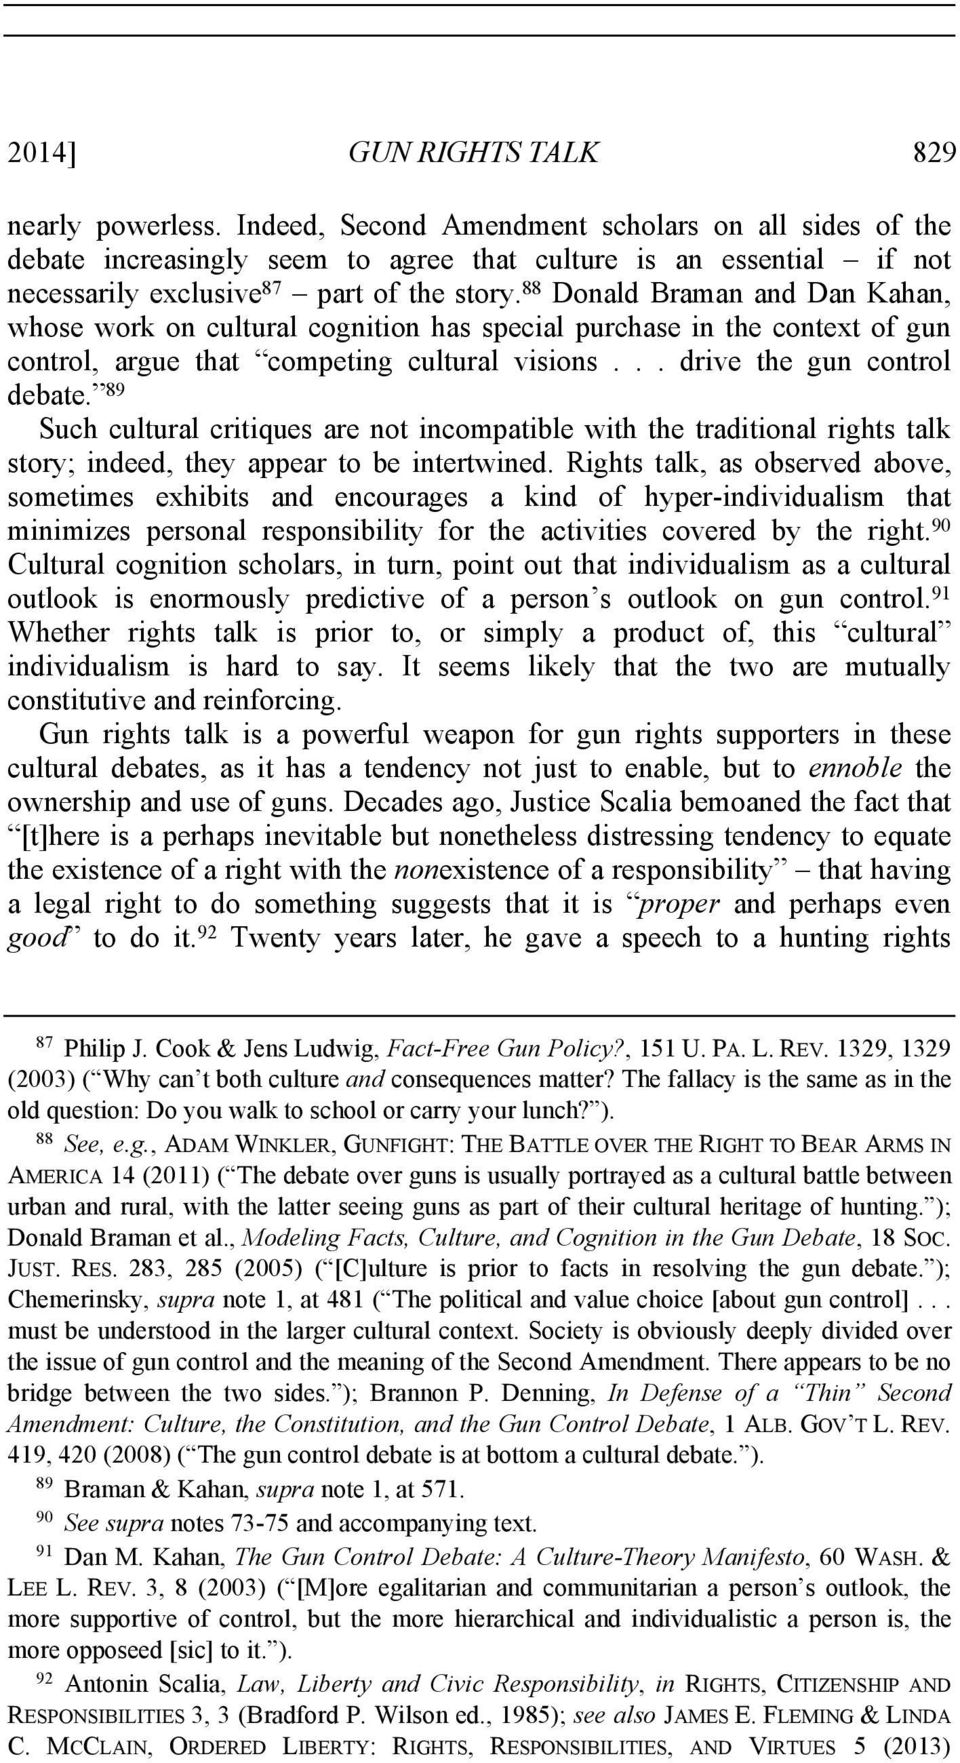 88 Donald Braman and Dan Kahan, whose work on cultural cognition has special purchase in the context of gun control, argue that competing cultural visions... drive the gun control debate.